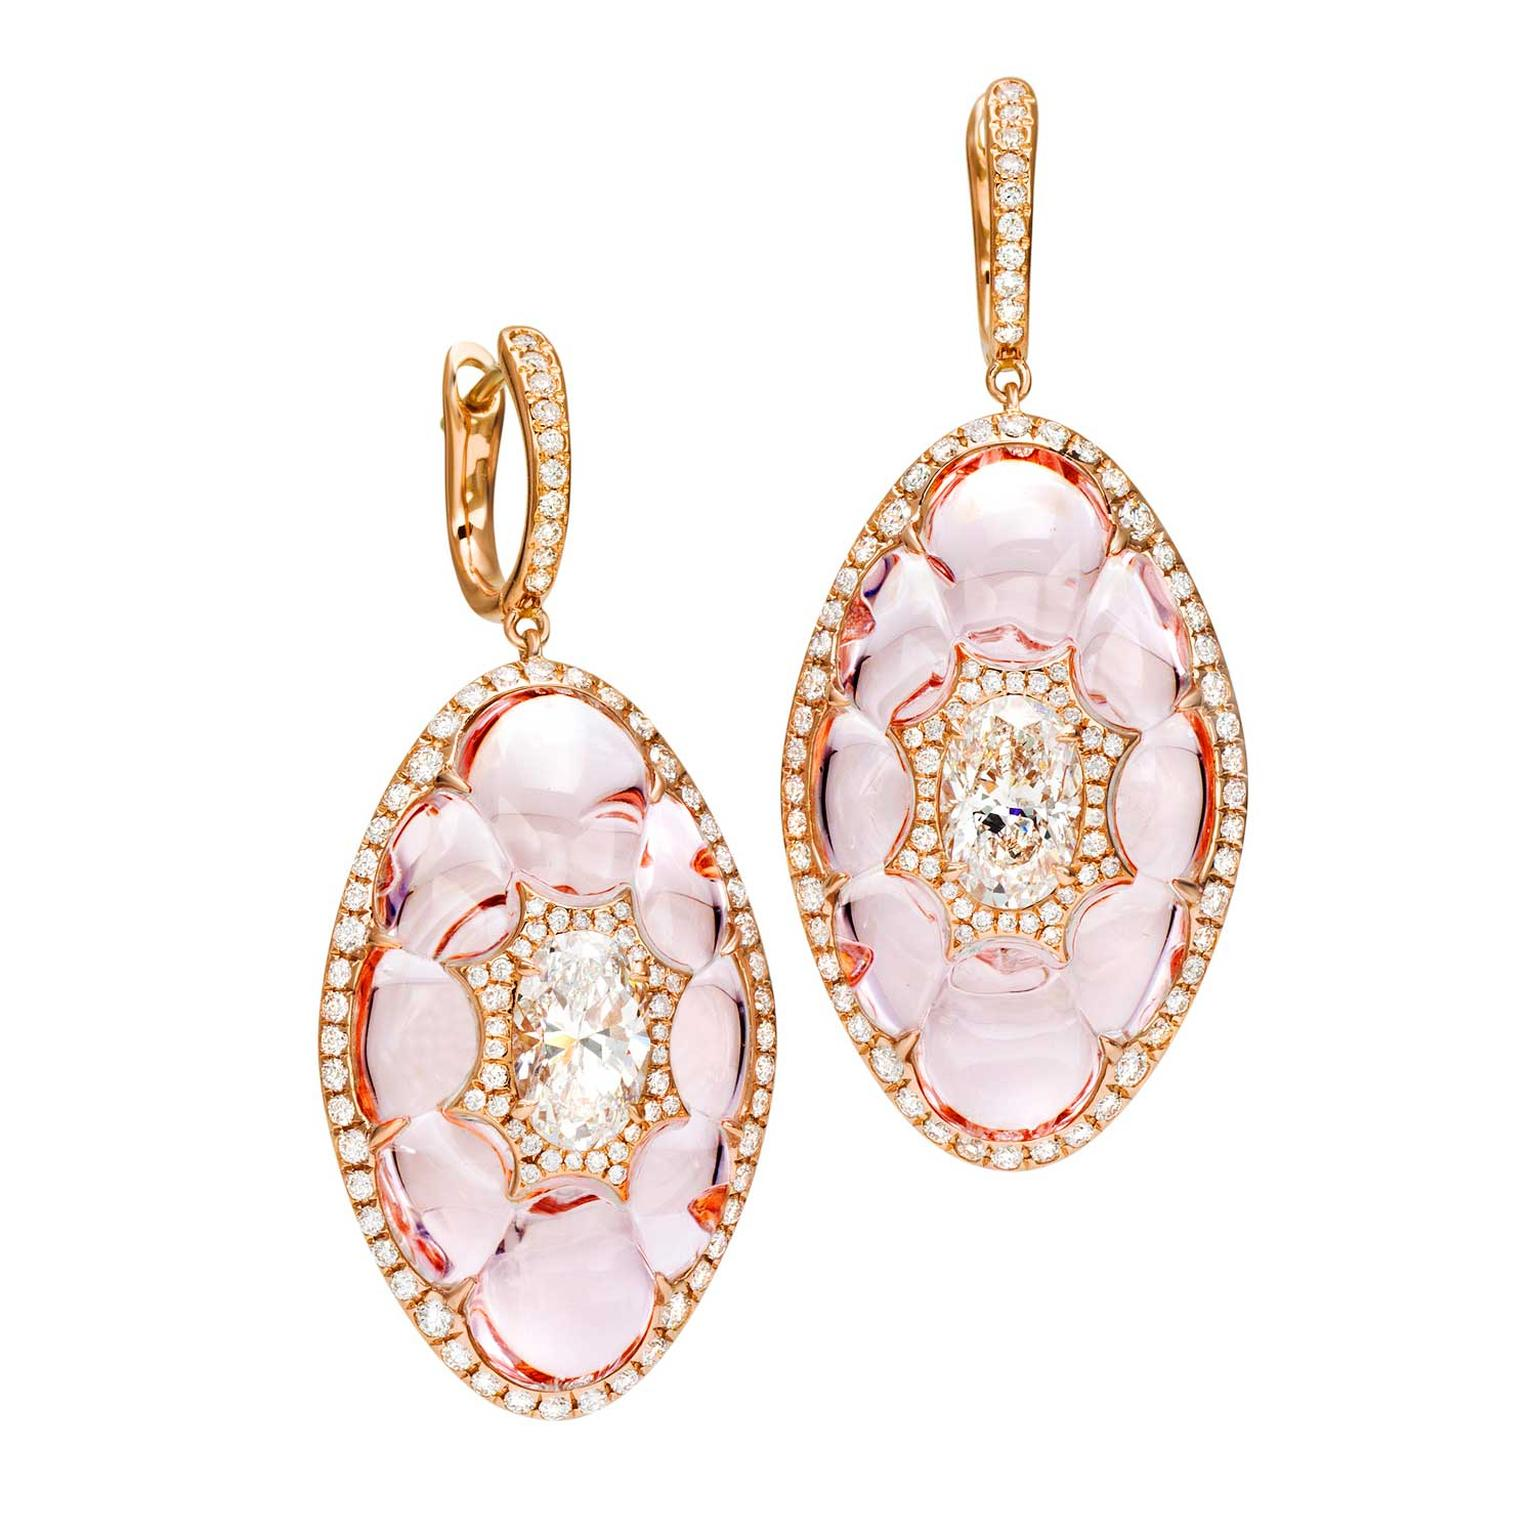 Boghossian diamond inlay into morganite earrings